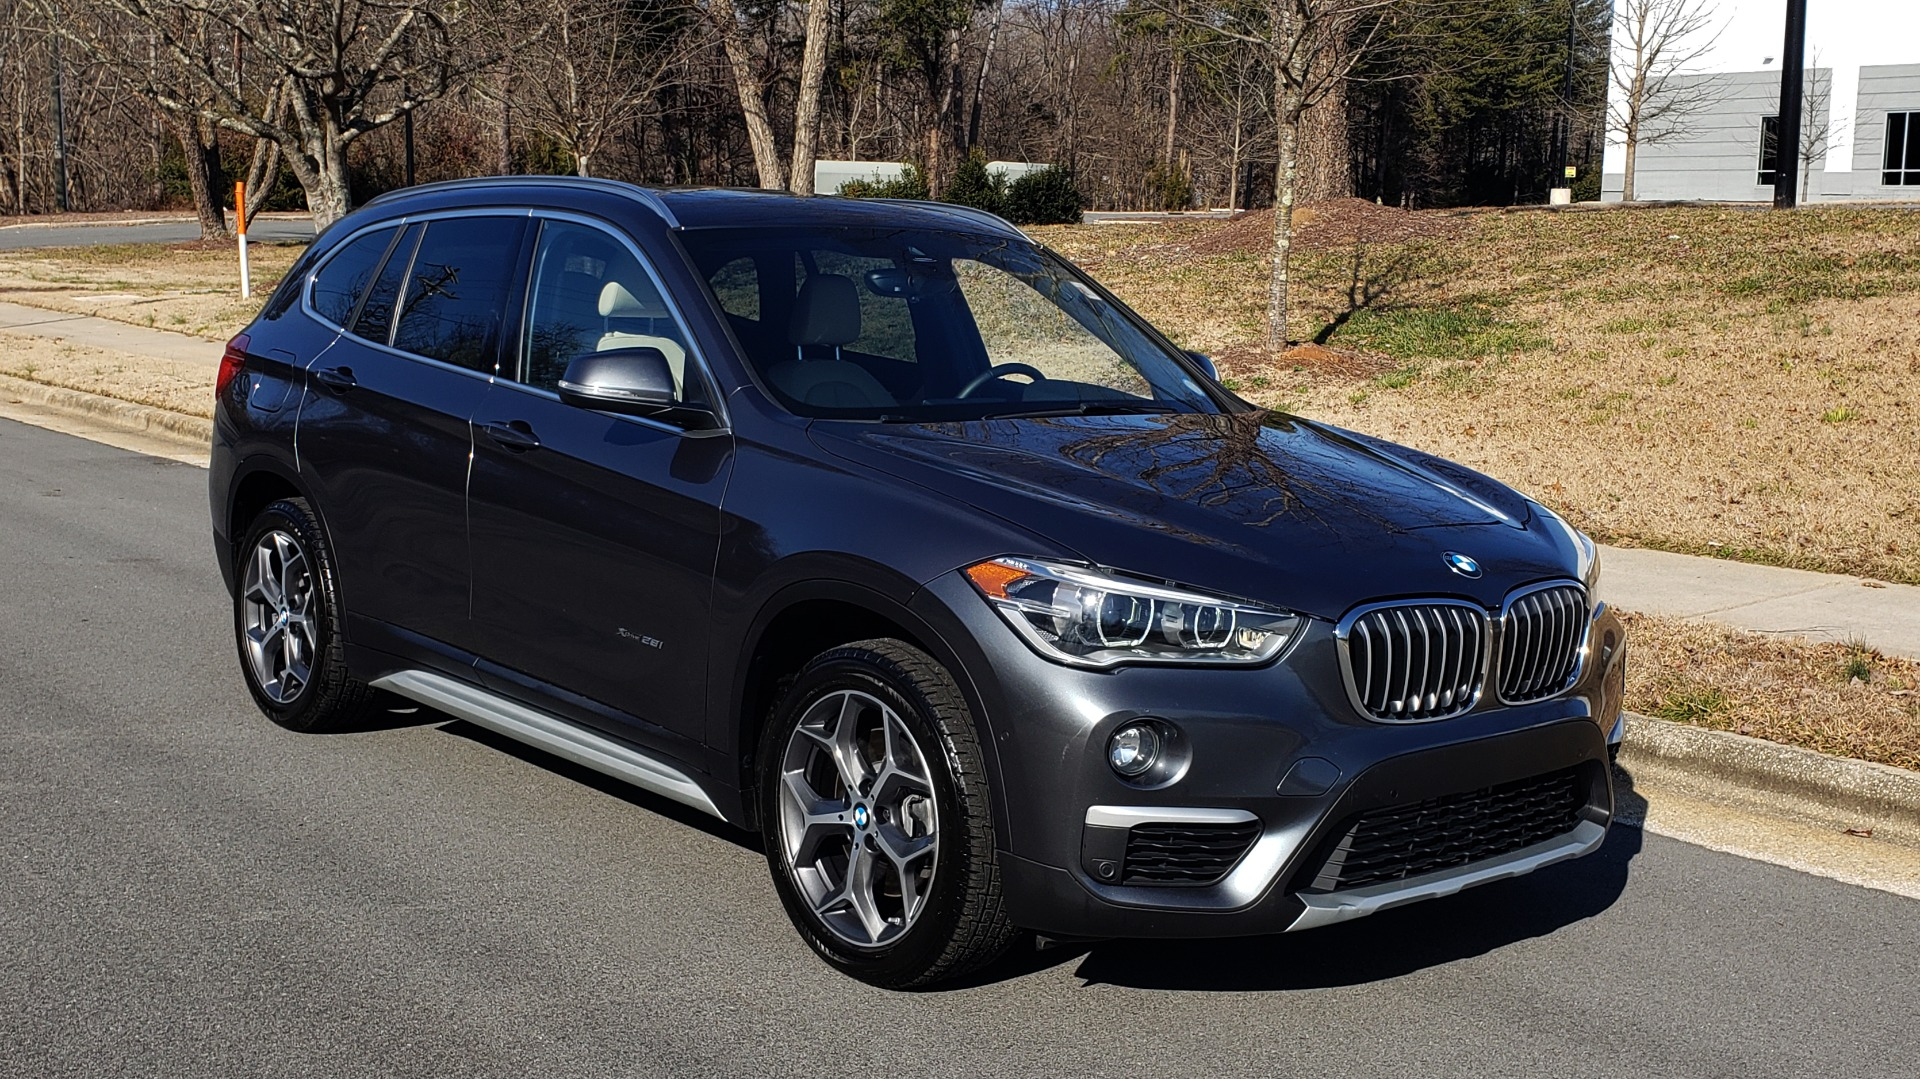 Used 2017 BMW X1 XDRIVE28I / PREM / TECH / DRVR ASST PLUS / COLD WTHR / REARVIEW for sale Sold at Formula Imports in Charlotte NC 28227 4